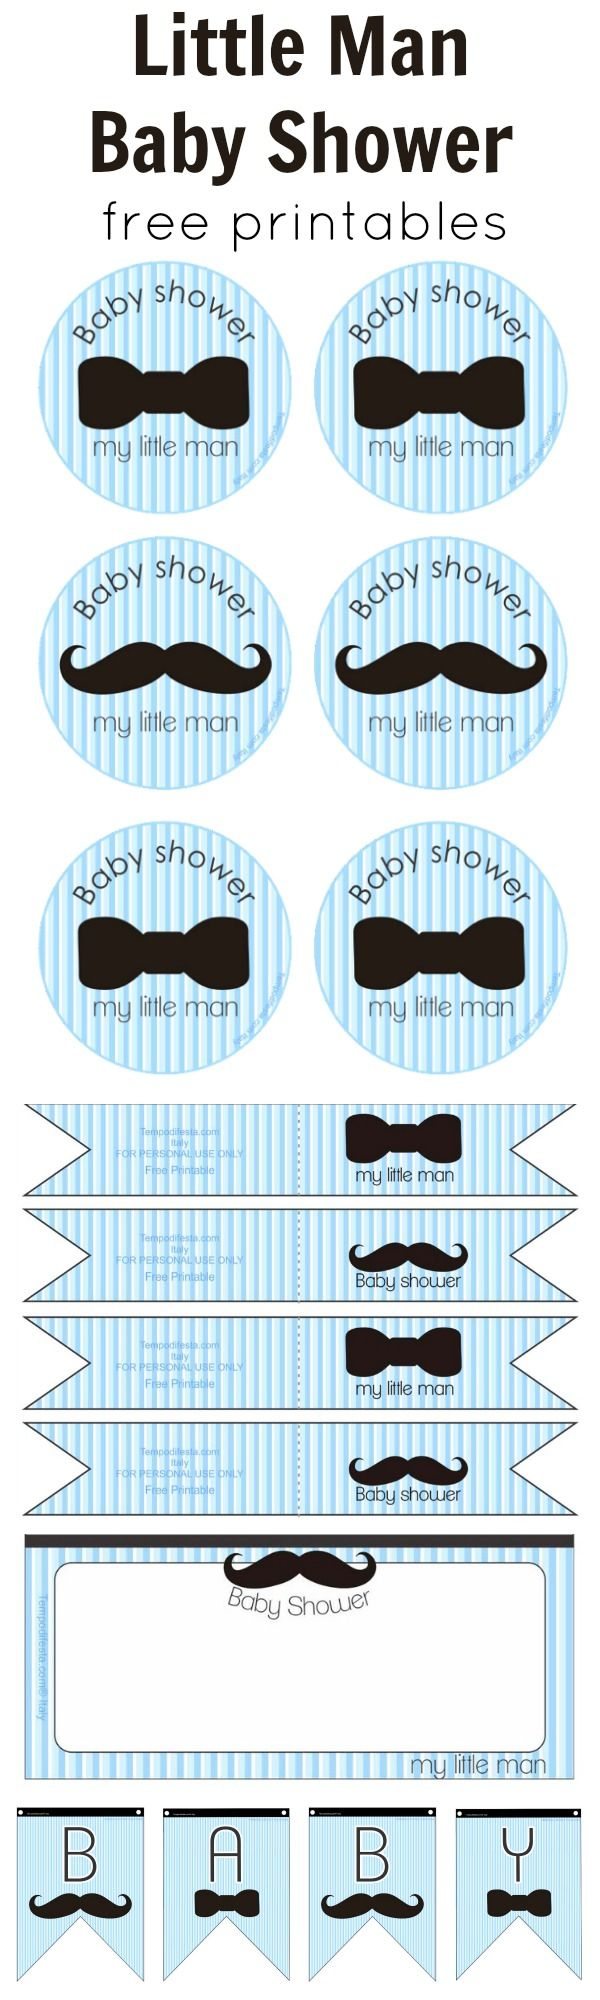 about men 39 s baby showers on pinterest little man shower little man